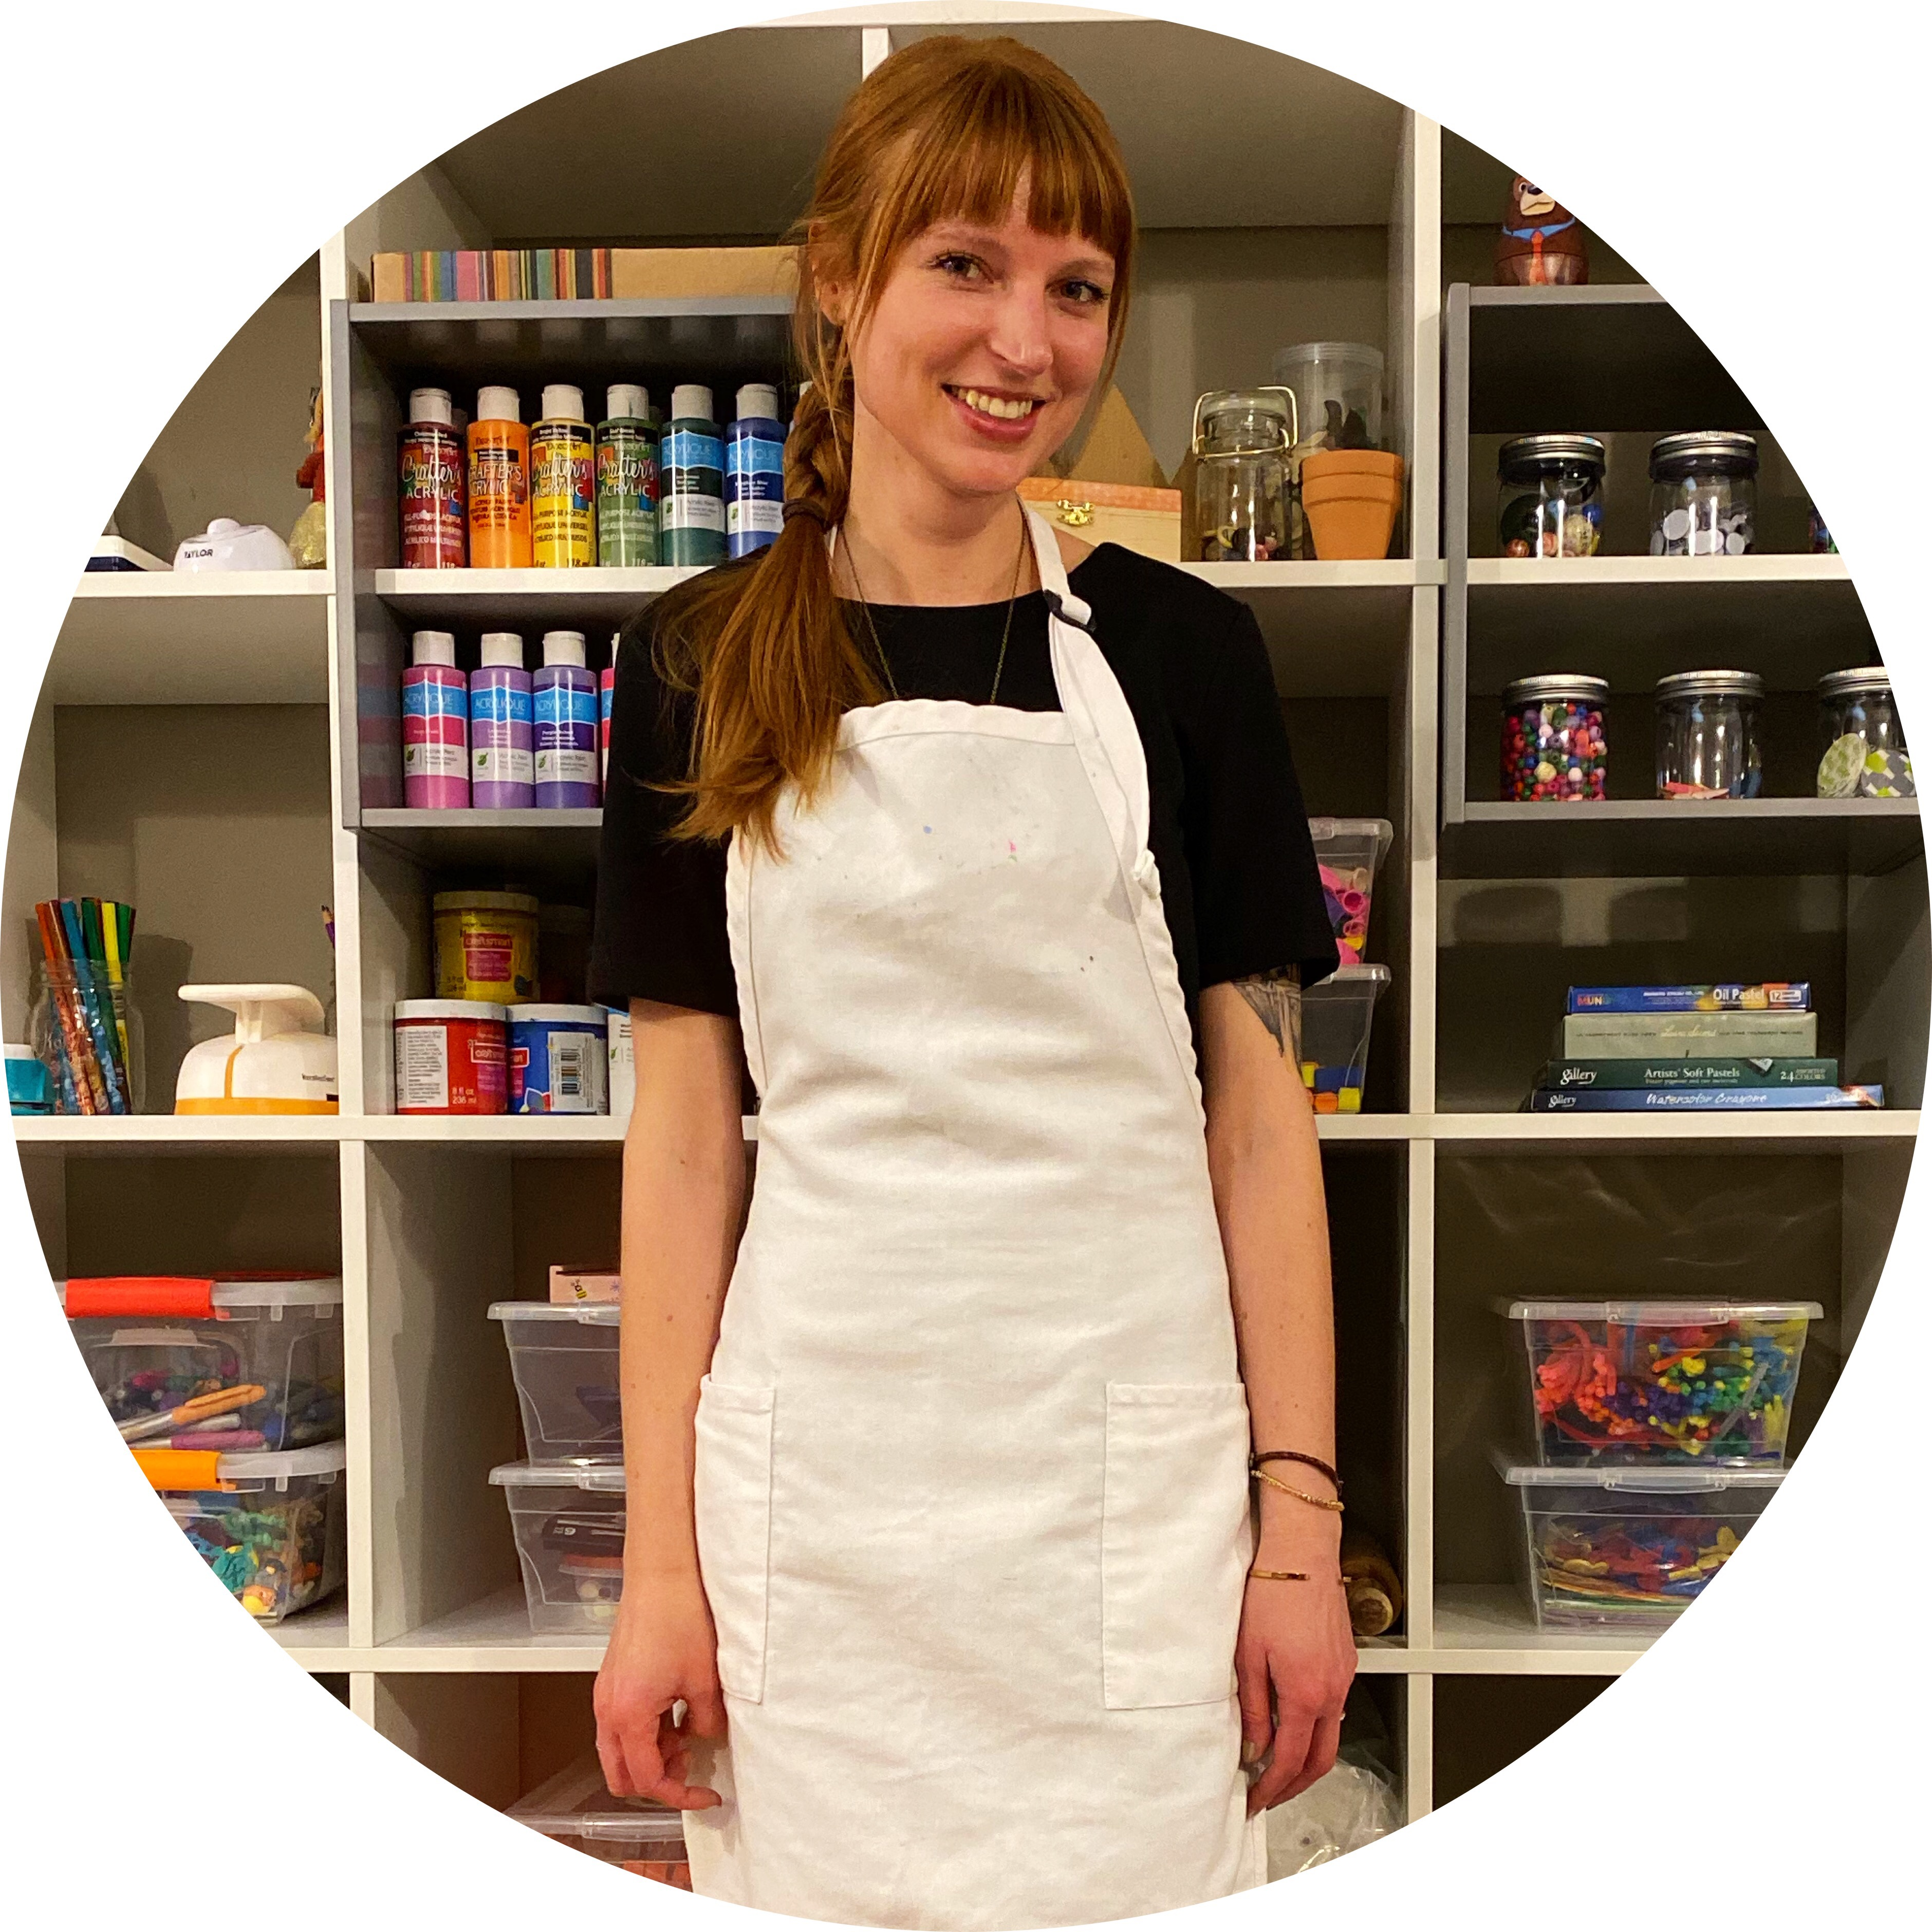 Woman wearing apron standing in front of a shelf of art supplies